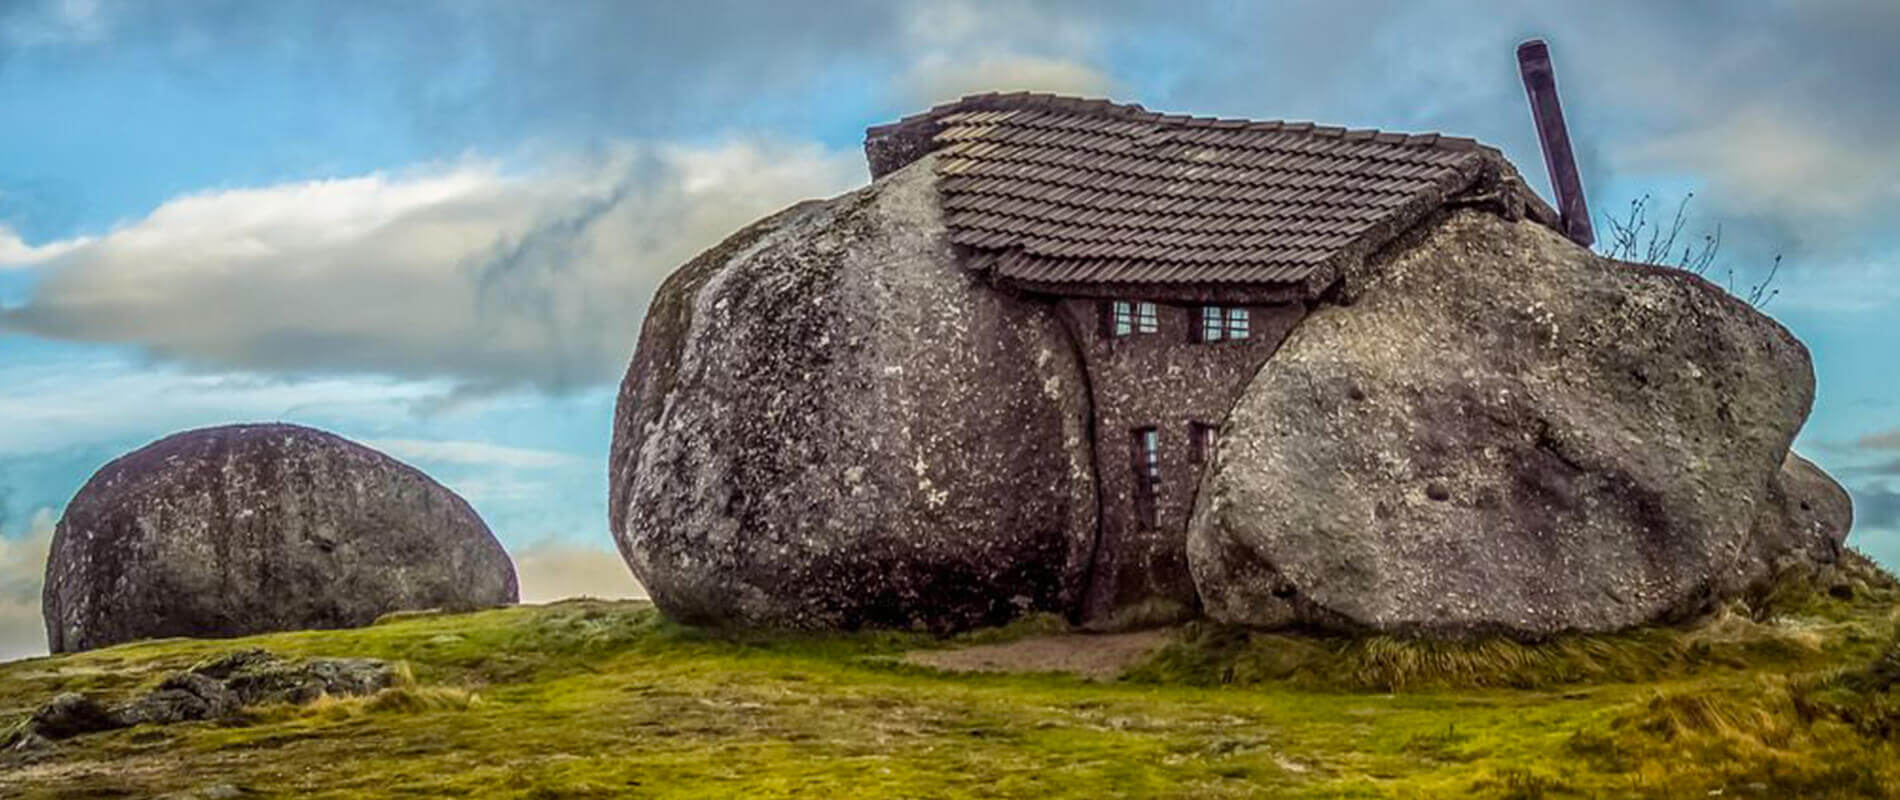 Casa do Penedo, the extraordinary stone house in Portugal